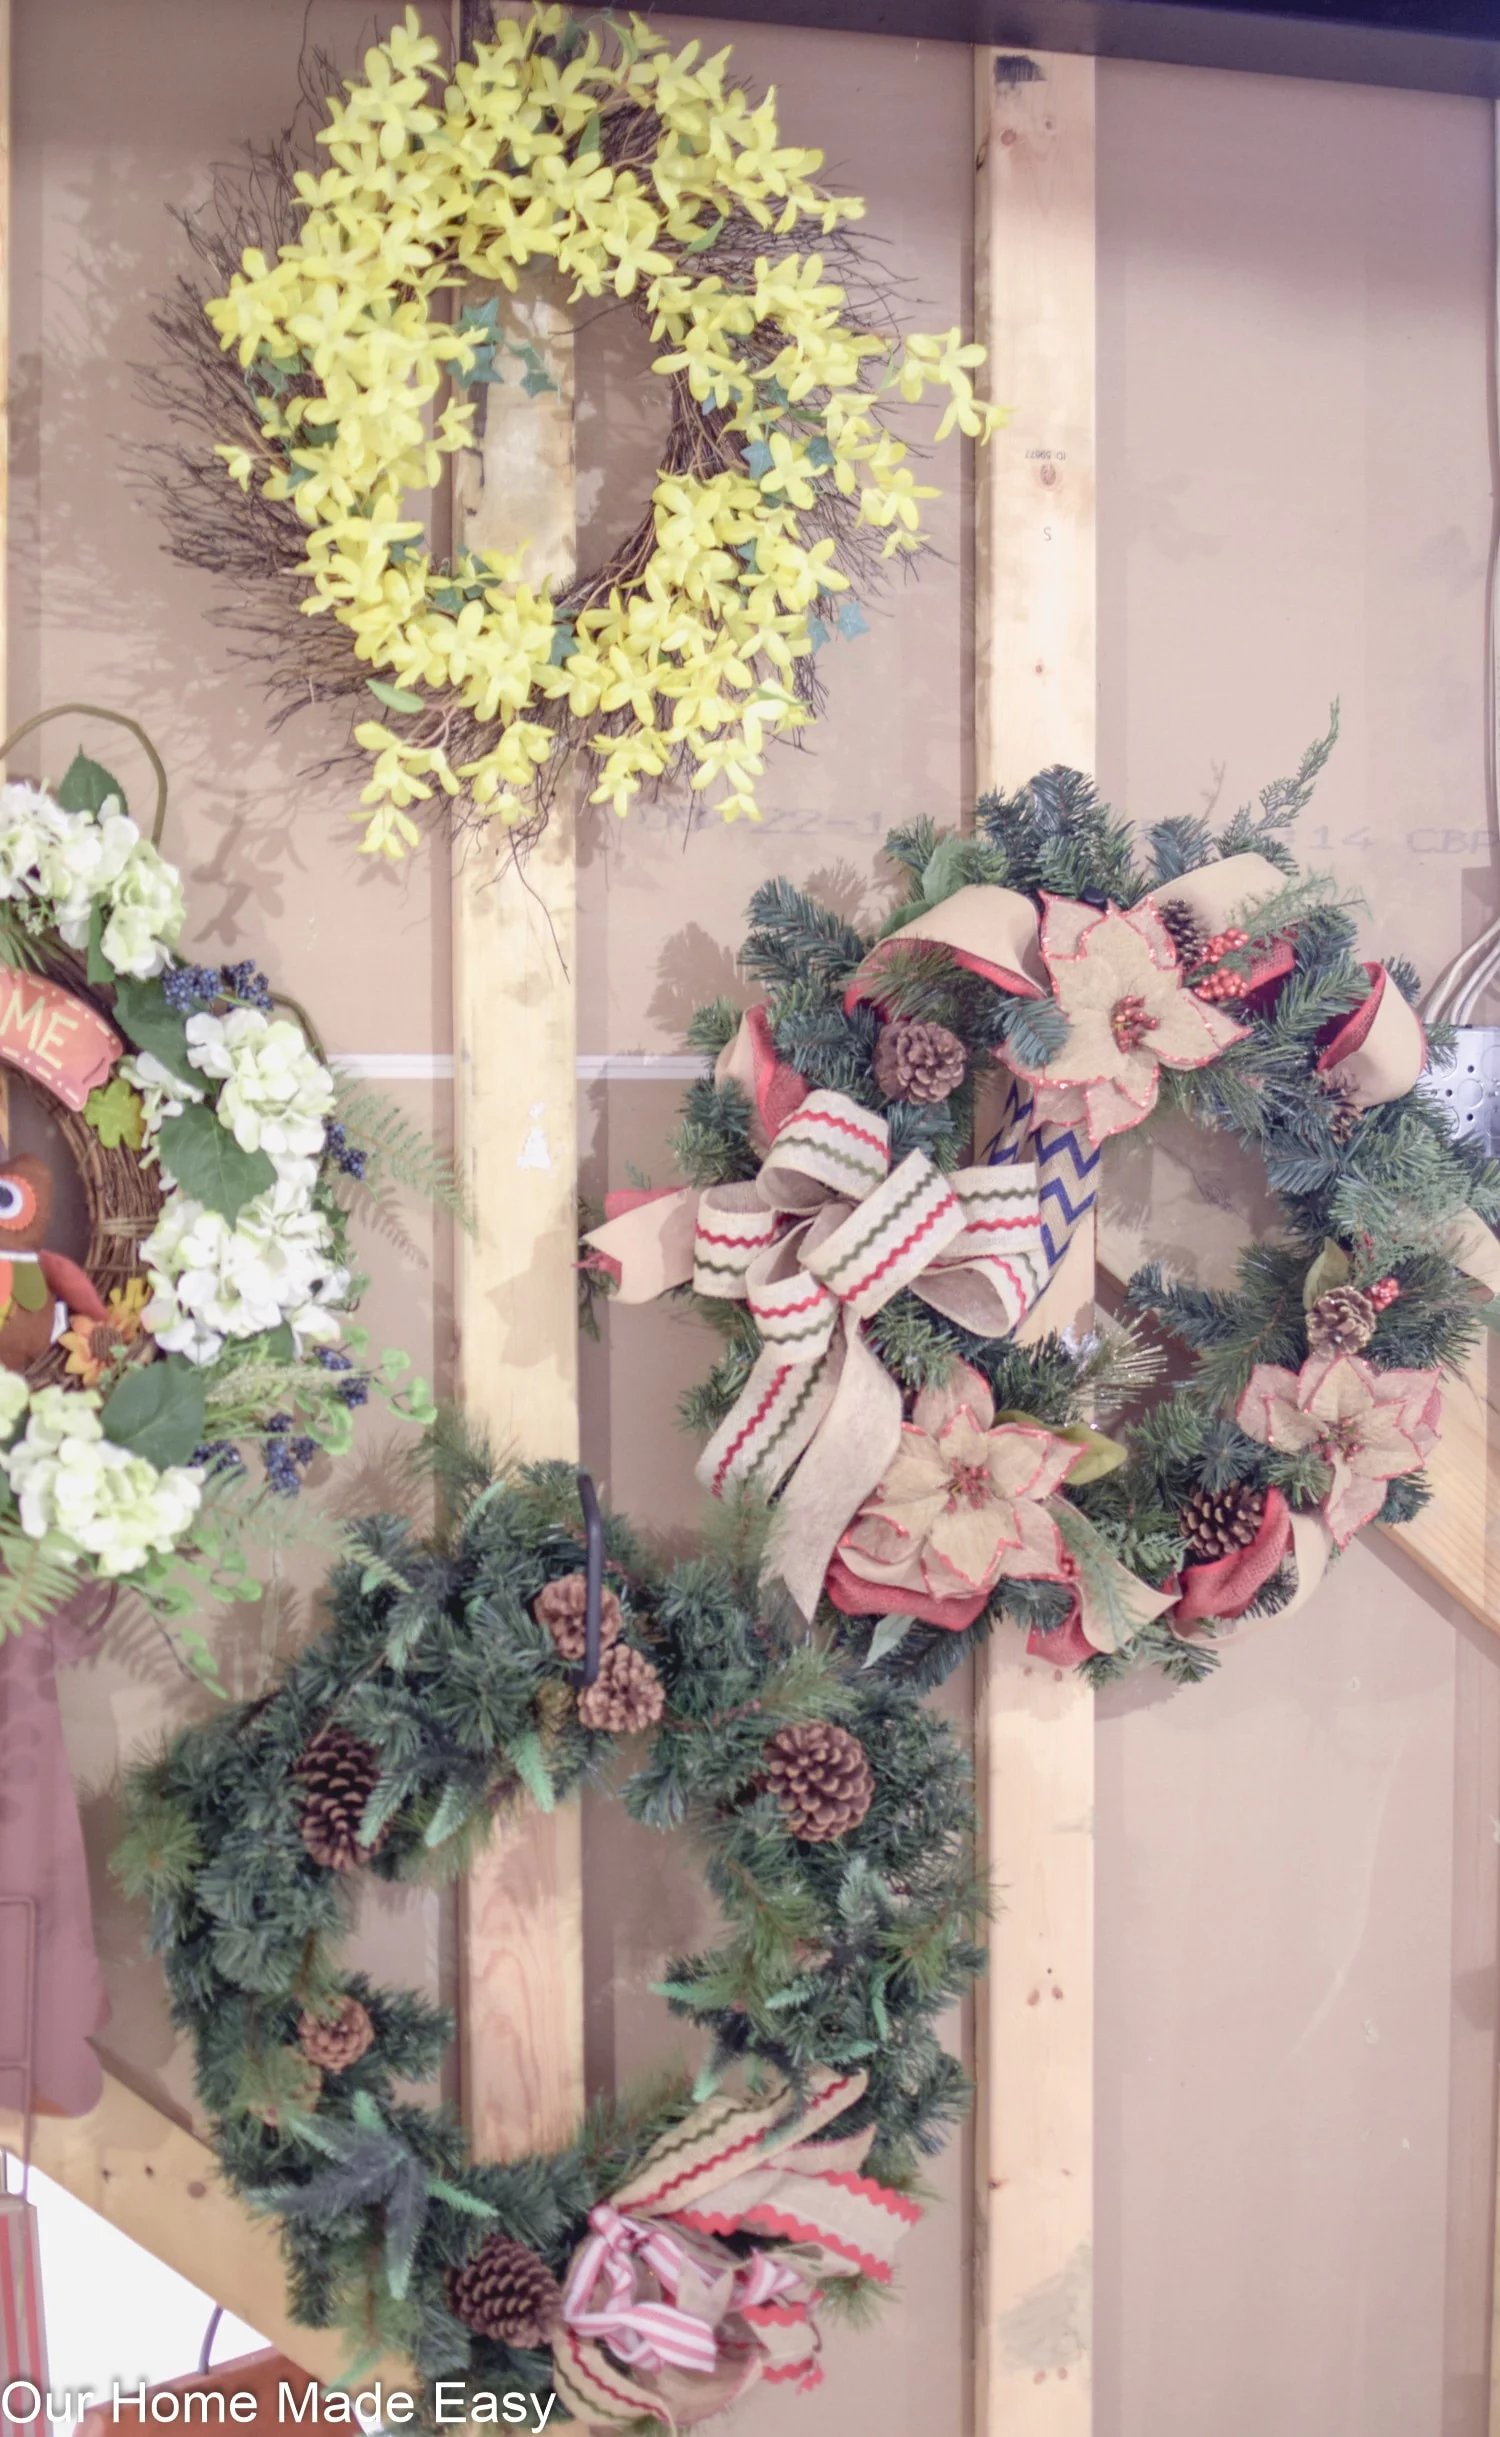 Everyday items that help you with Christmas storage. These Christmas storage ideas and hacks will blow your mind and help make decorating easier.   holiday decor organization   holiday storage   Christmas storage ideas   Christmas Organization Hacks #organization #christmasorganization #holidayorganization #christmasstorage